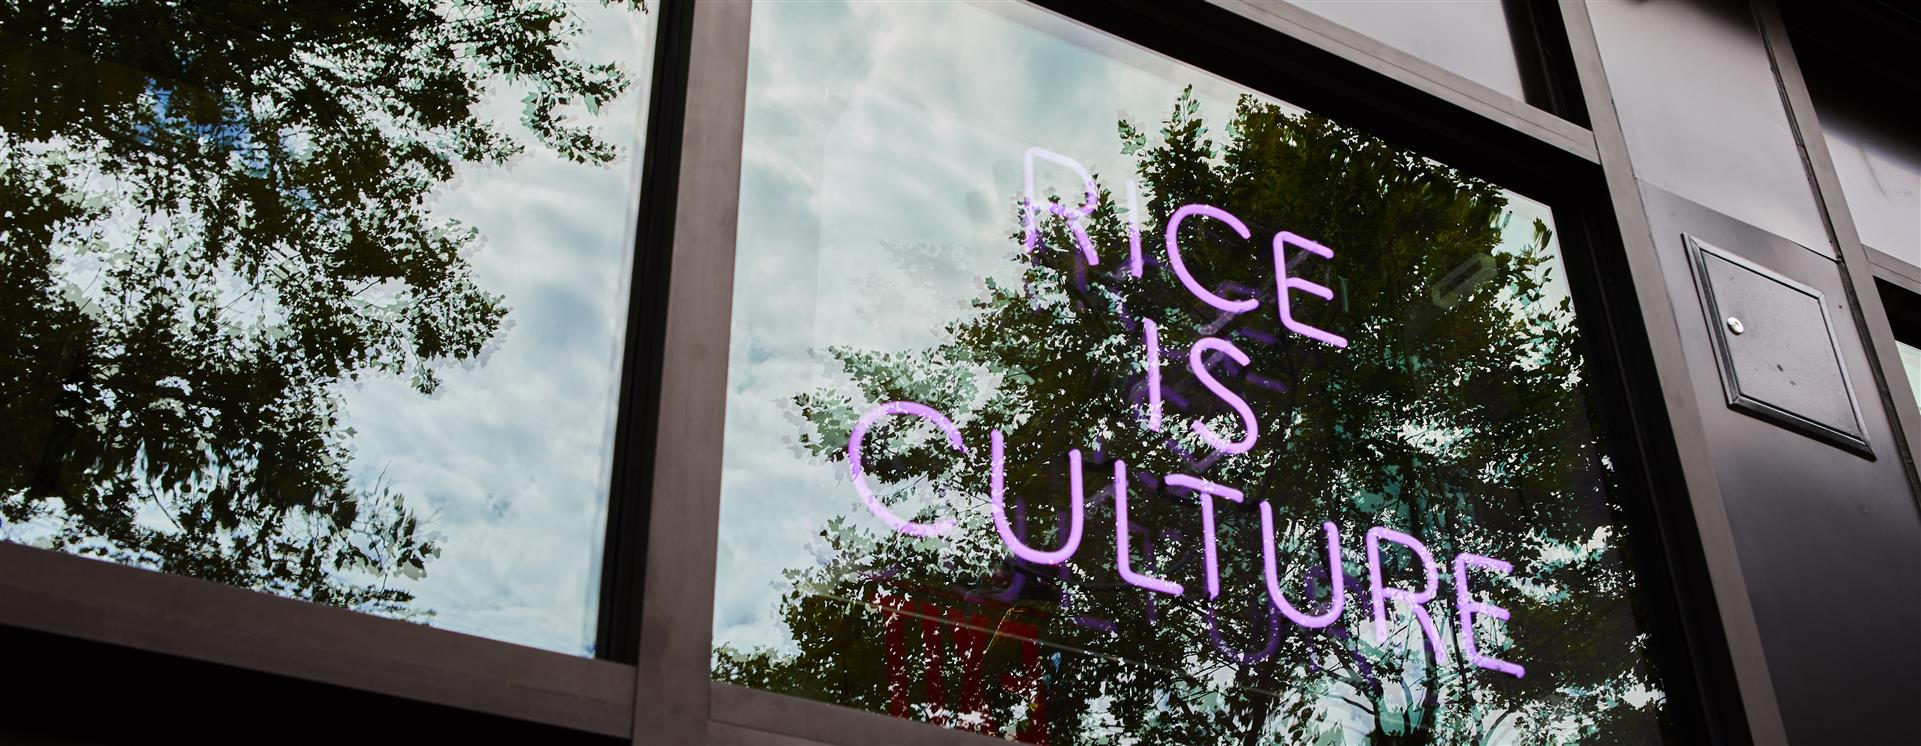 "Neon sign in the window at Fieldtrip that says ""rice is culture"""